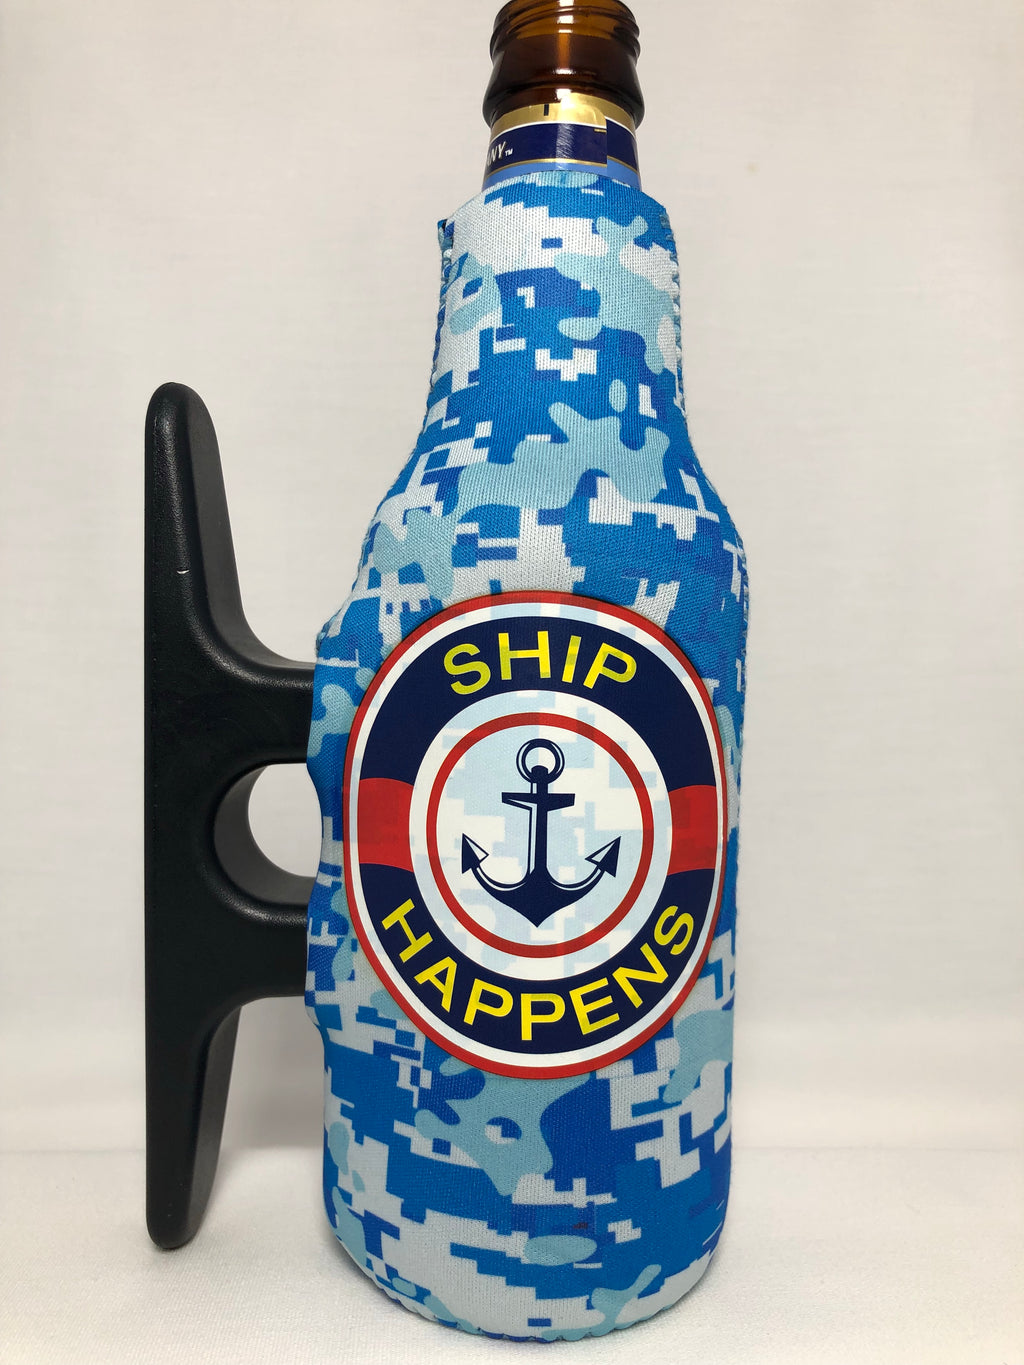 H2O Camo Zipper Cooler, Ship Happens